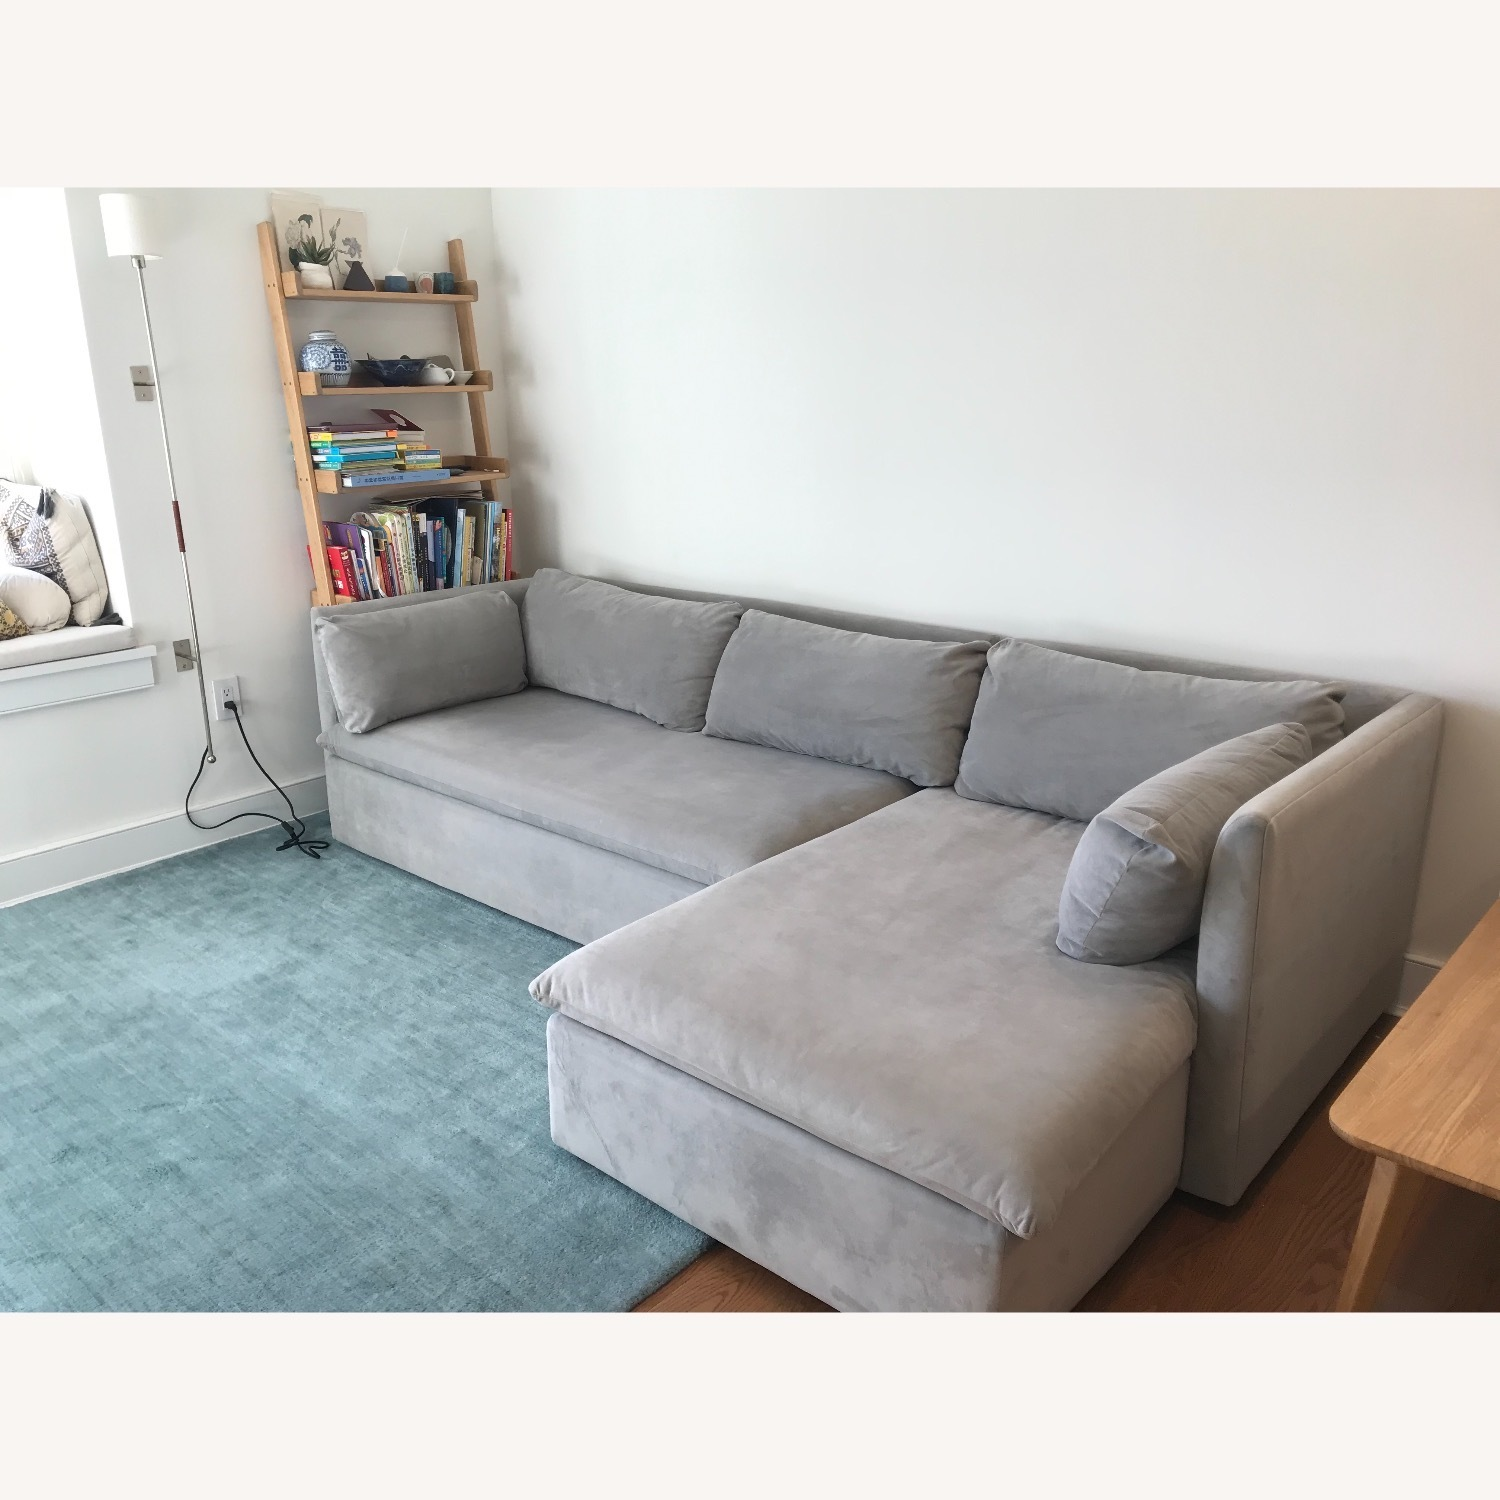 West Elm Shelter Sectional Sofa Dove Gray - image-6